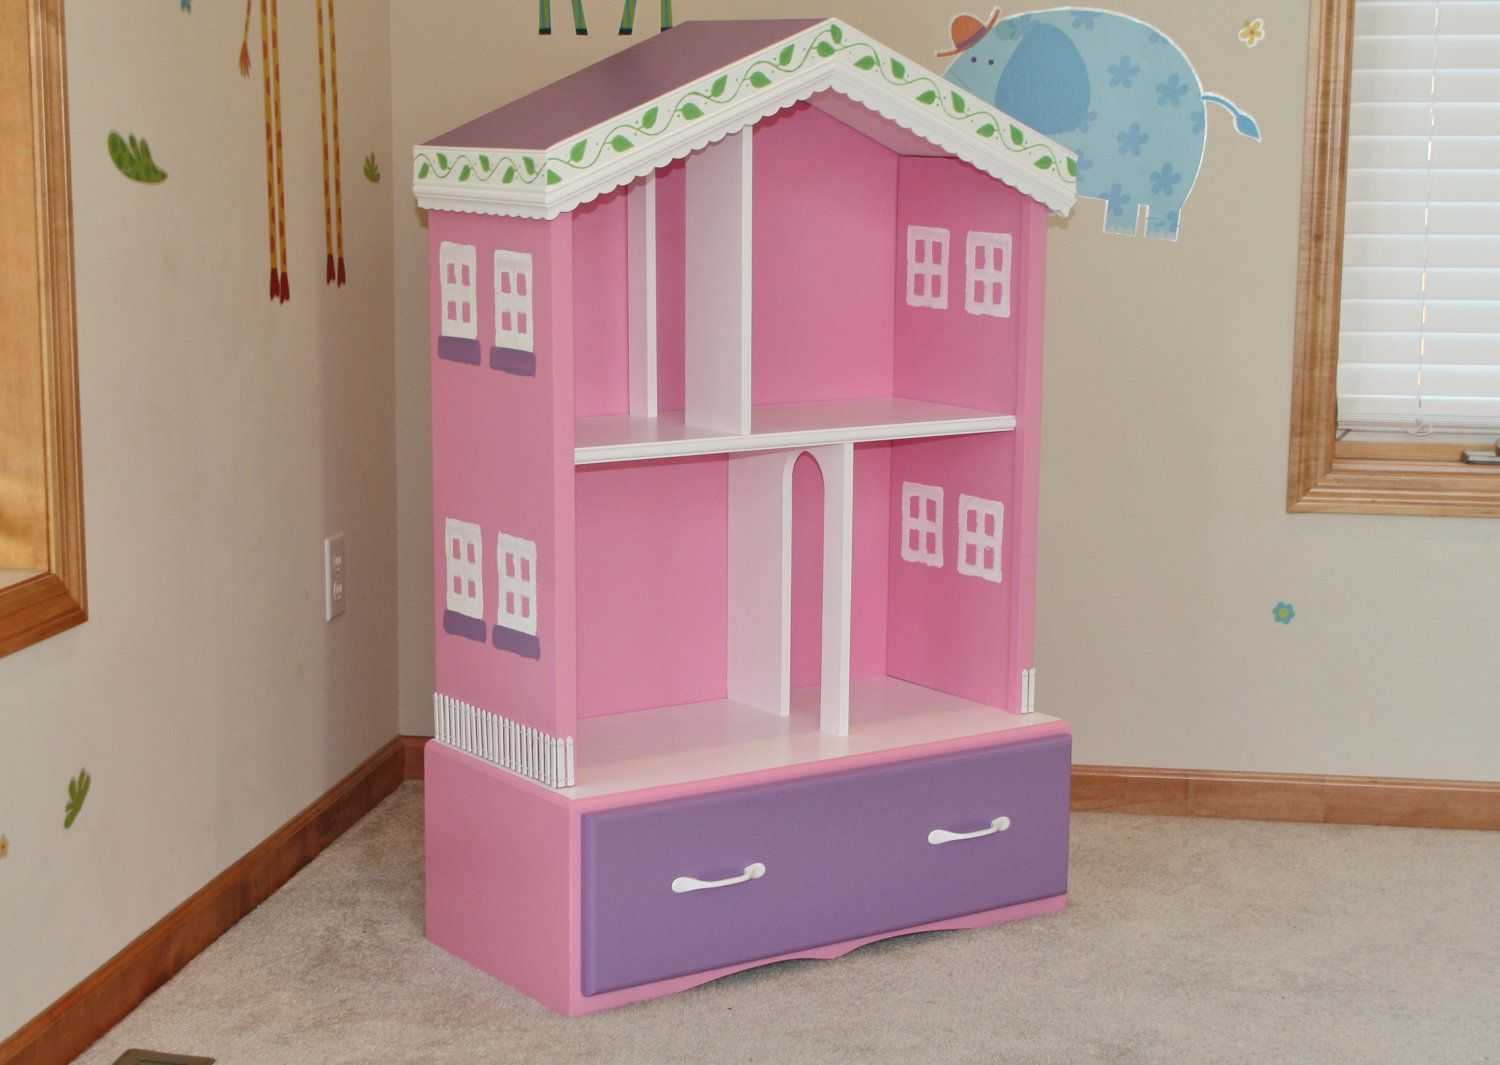 Design Homemade Doll Houses doll houses barbie house by handcraftedbyneil on etsy etsy